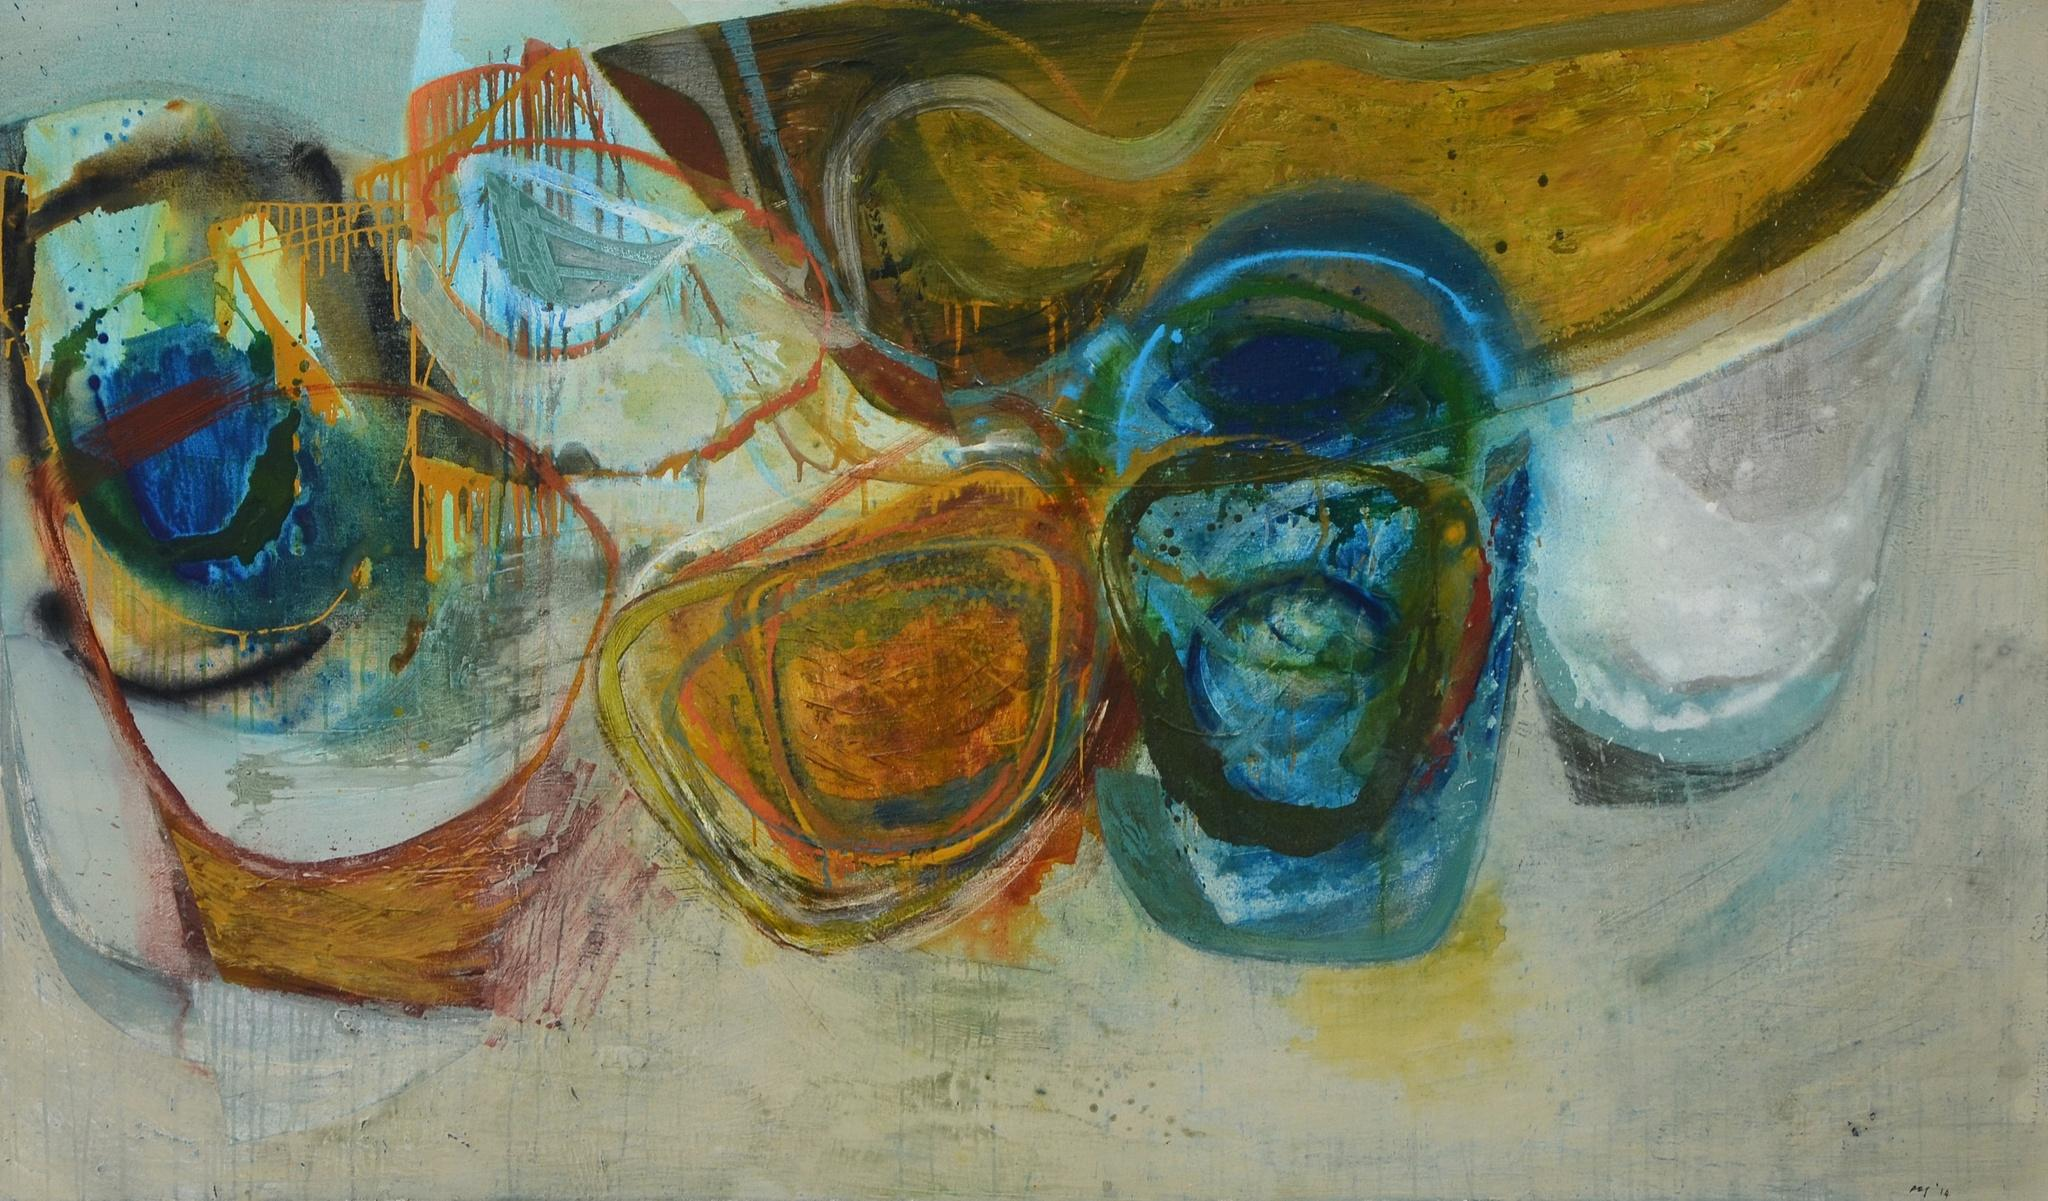 Peter Joyce, September, large abstract painting. Liminal landscape